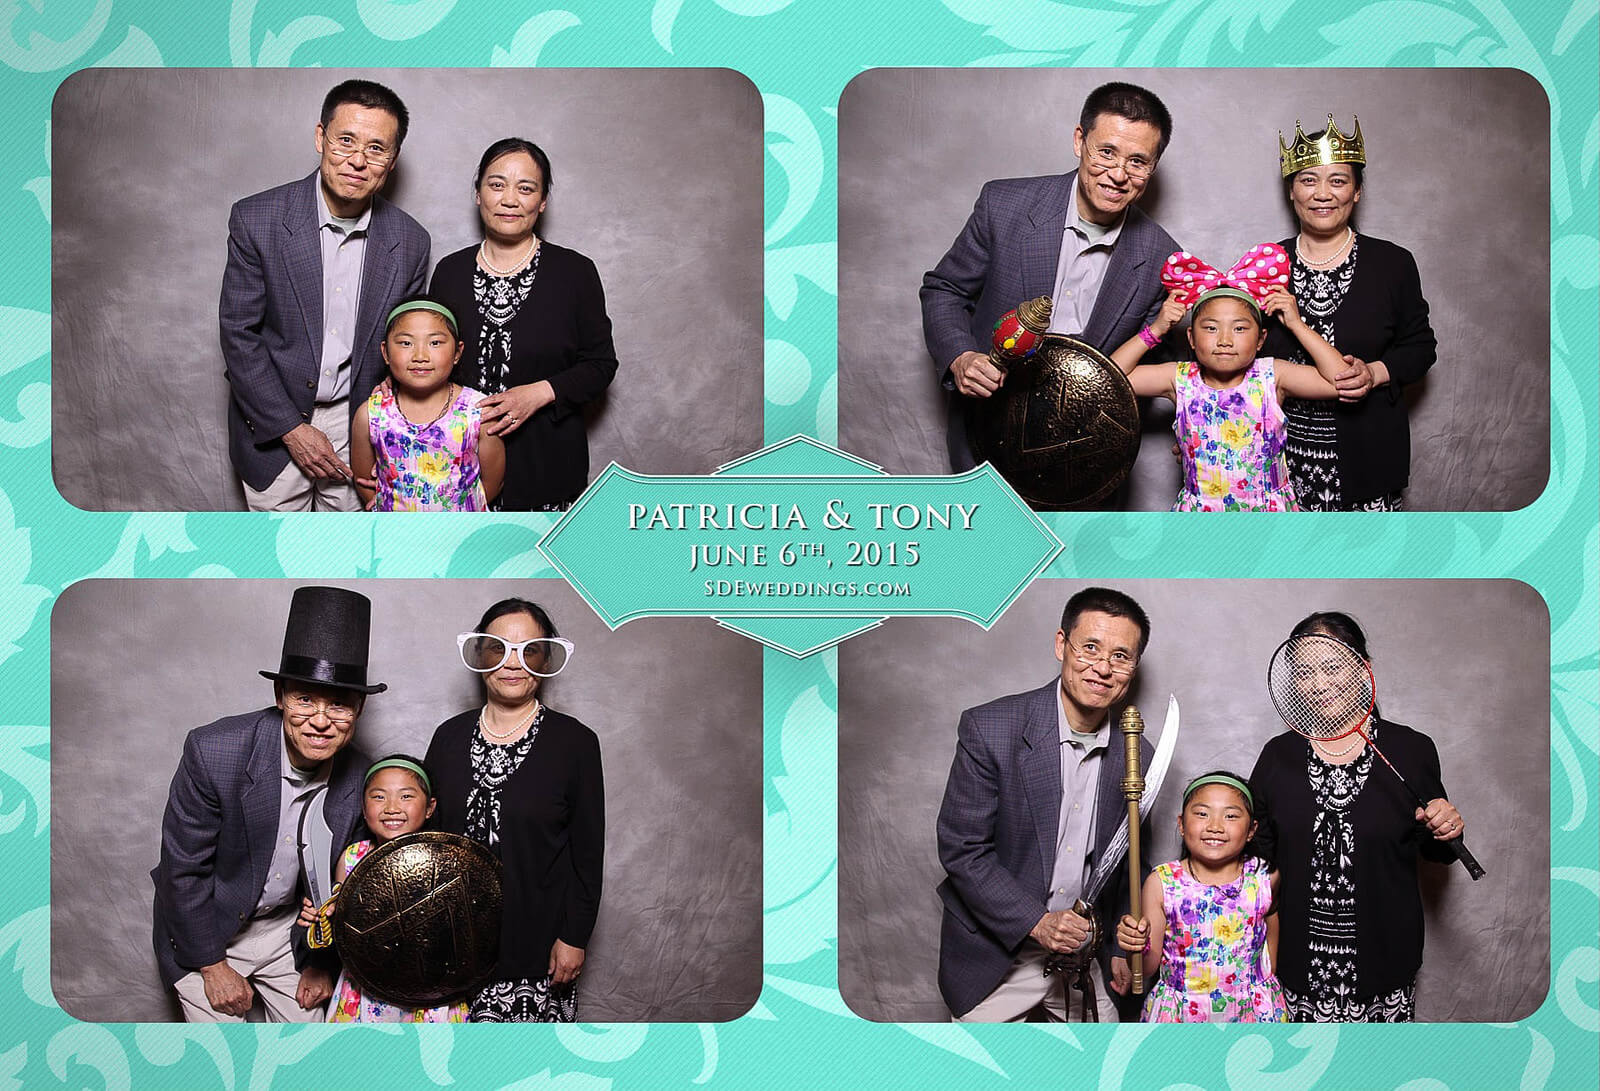 Toronto Donalda Club Chinese Wedding Photobooth Rental 6